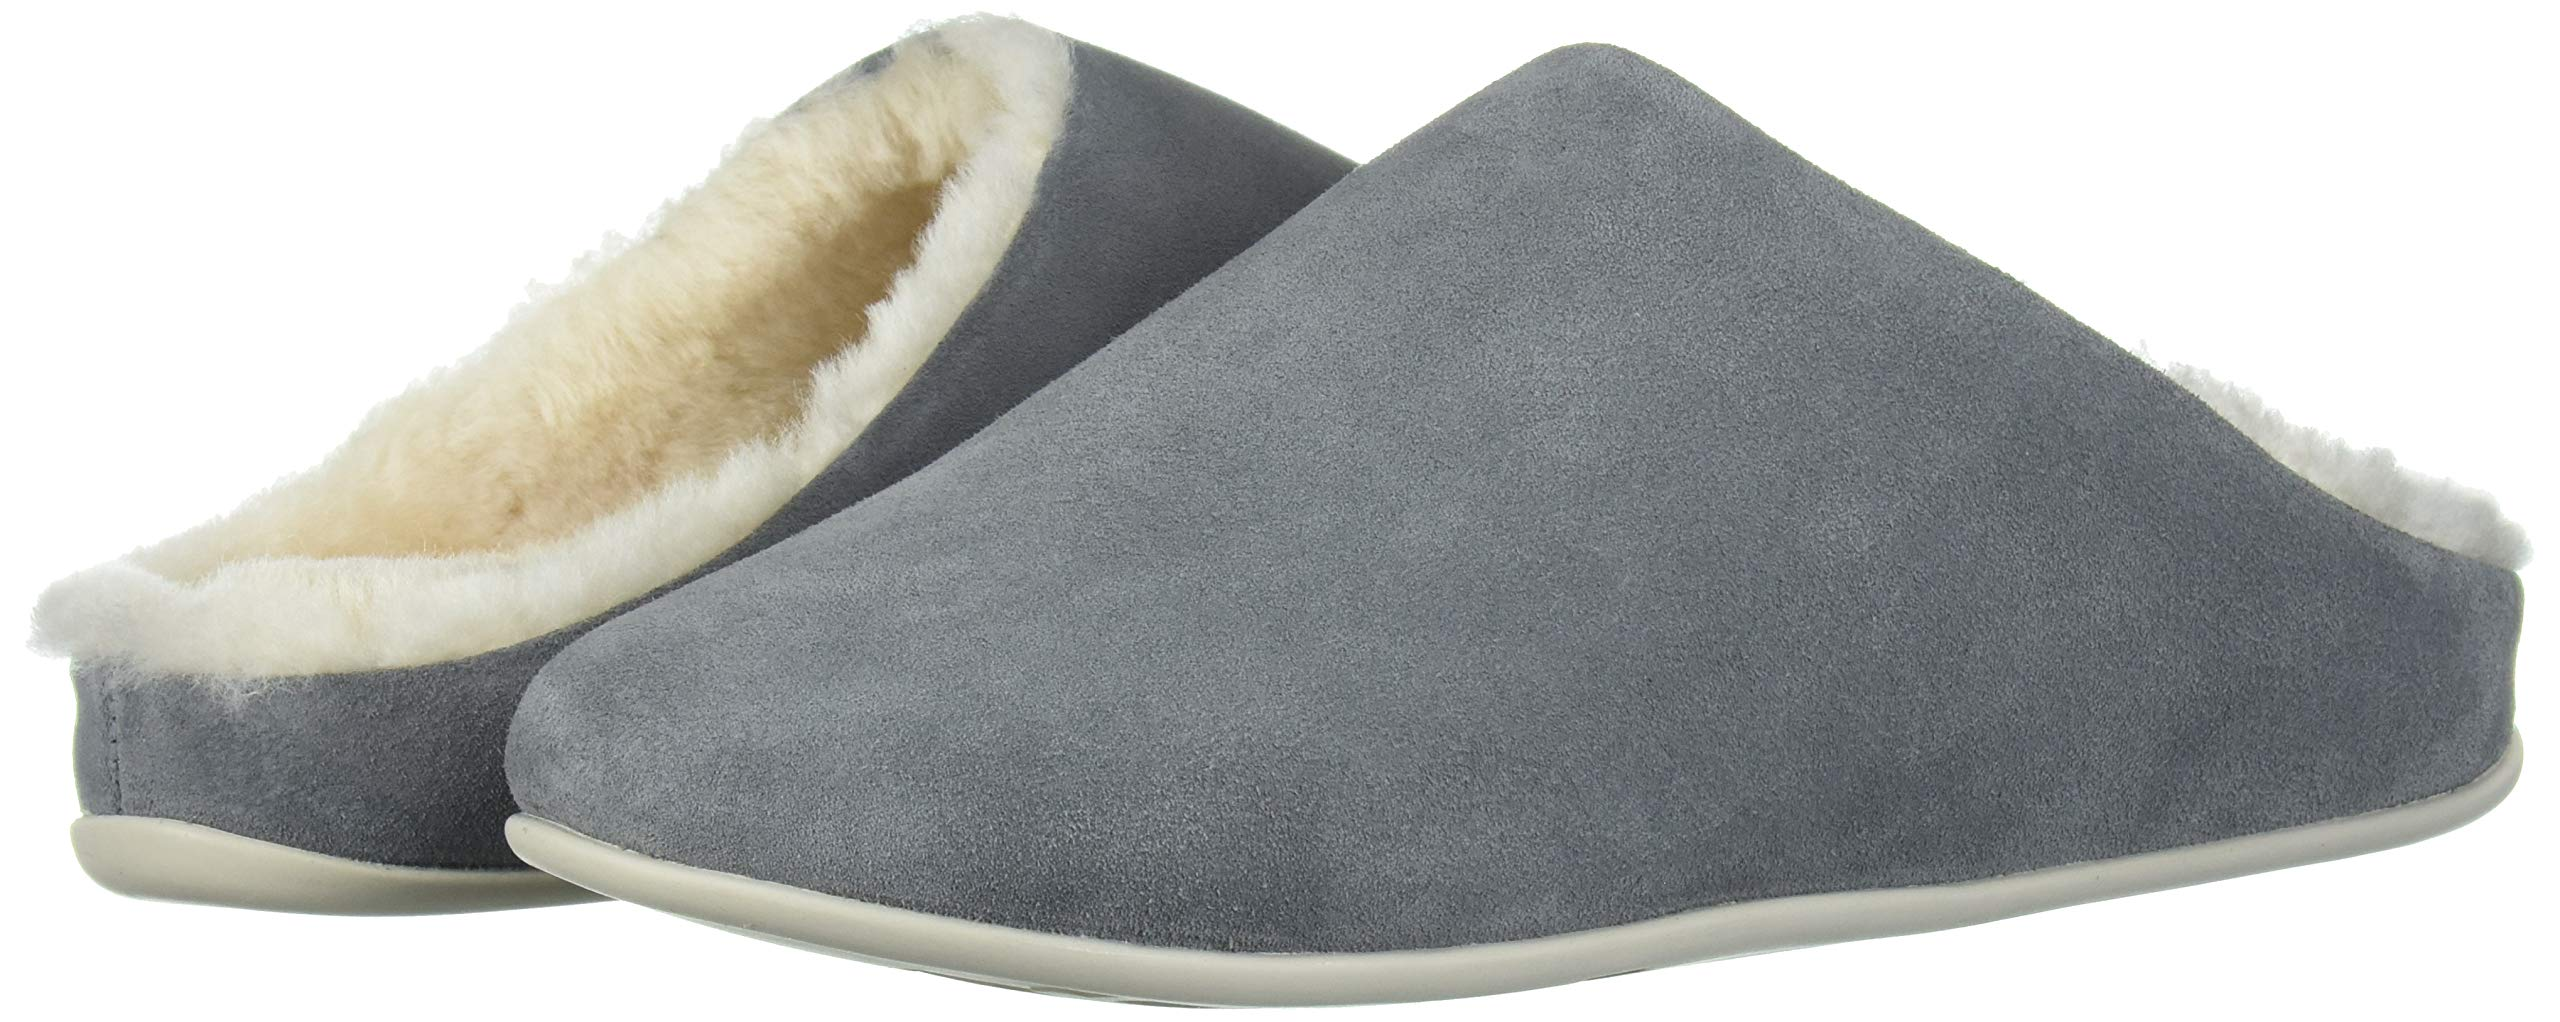 FITFLOP Women's Chrissie Shearling